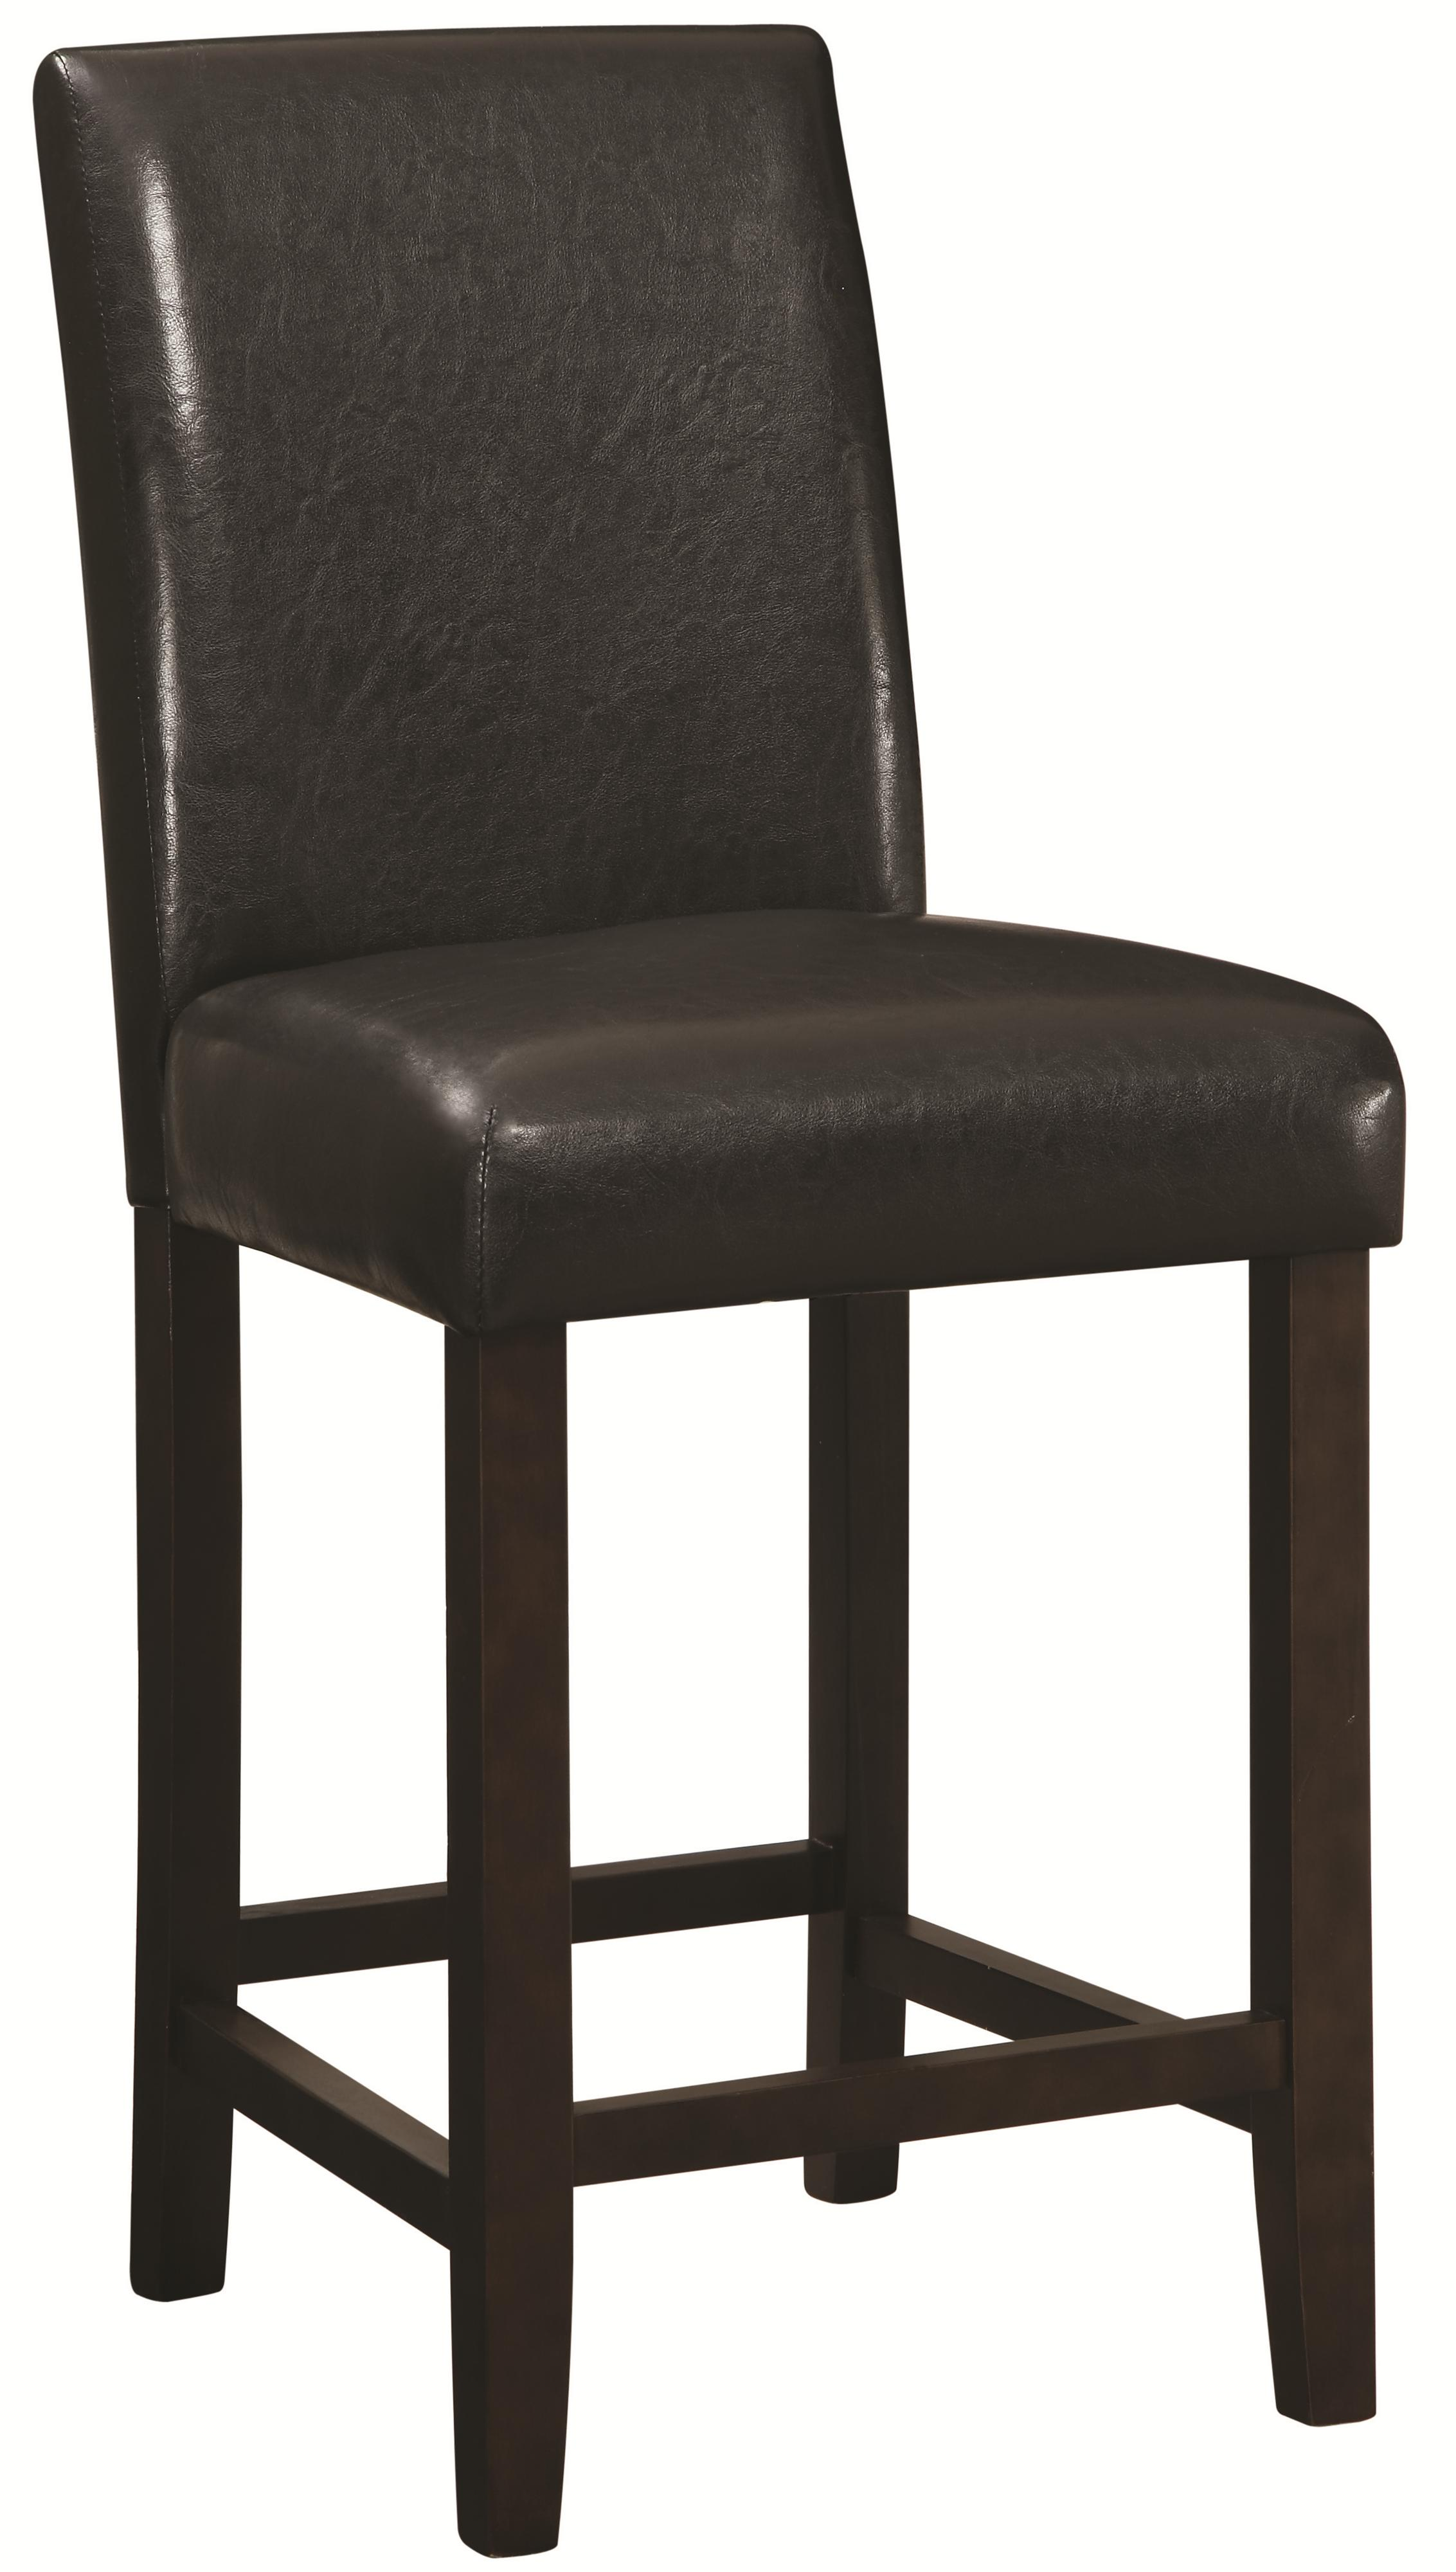 Coaster dining chairs and bar stools 130059 24 counter for Counter height stools